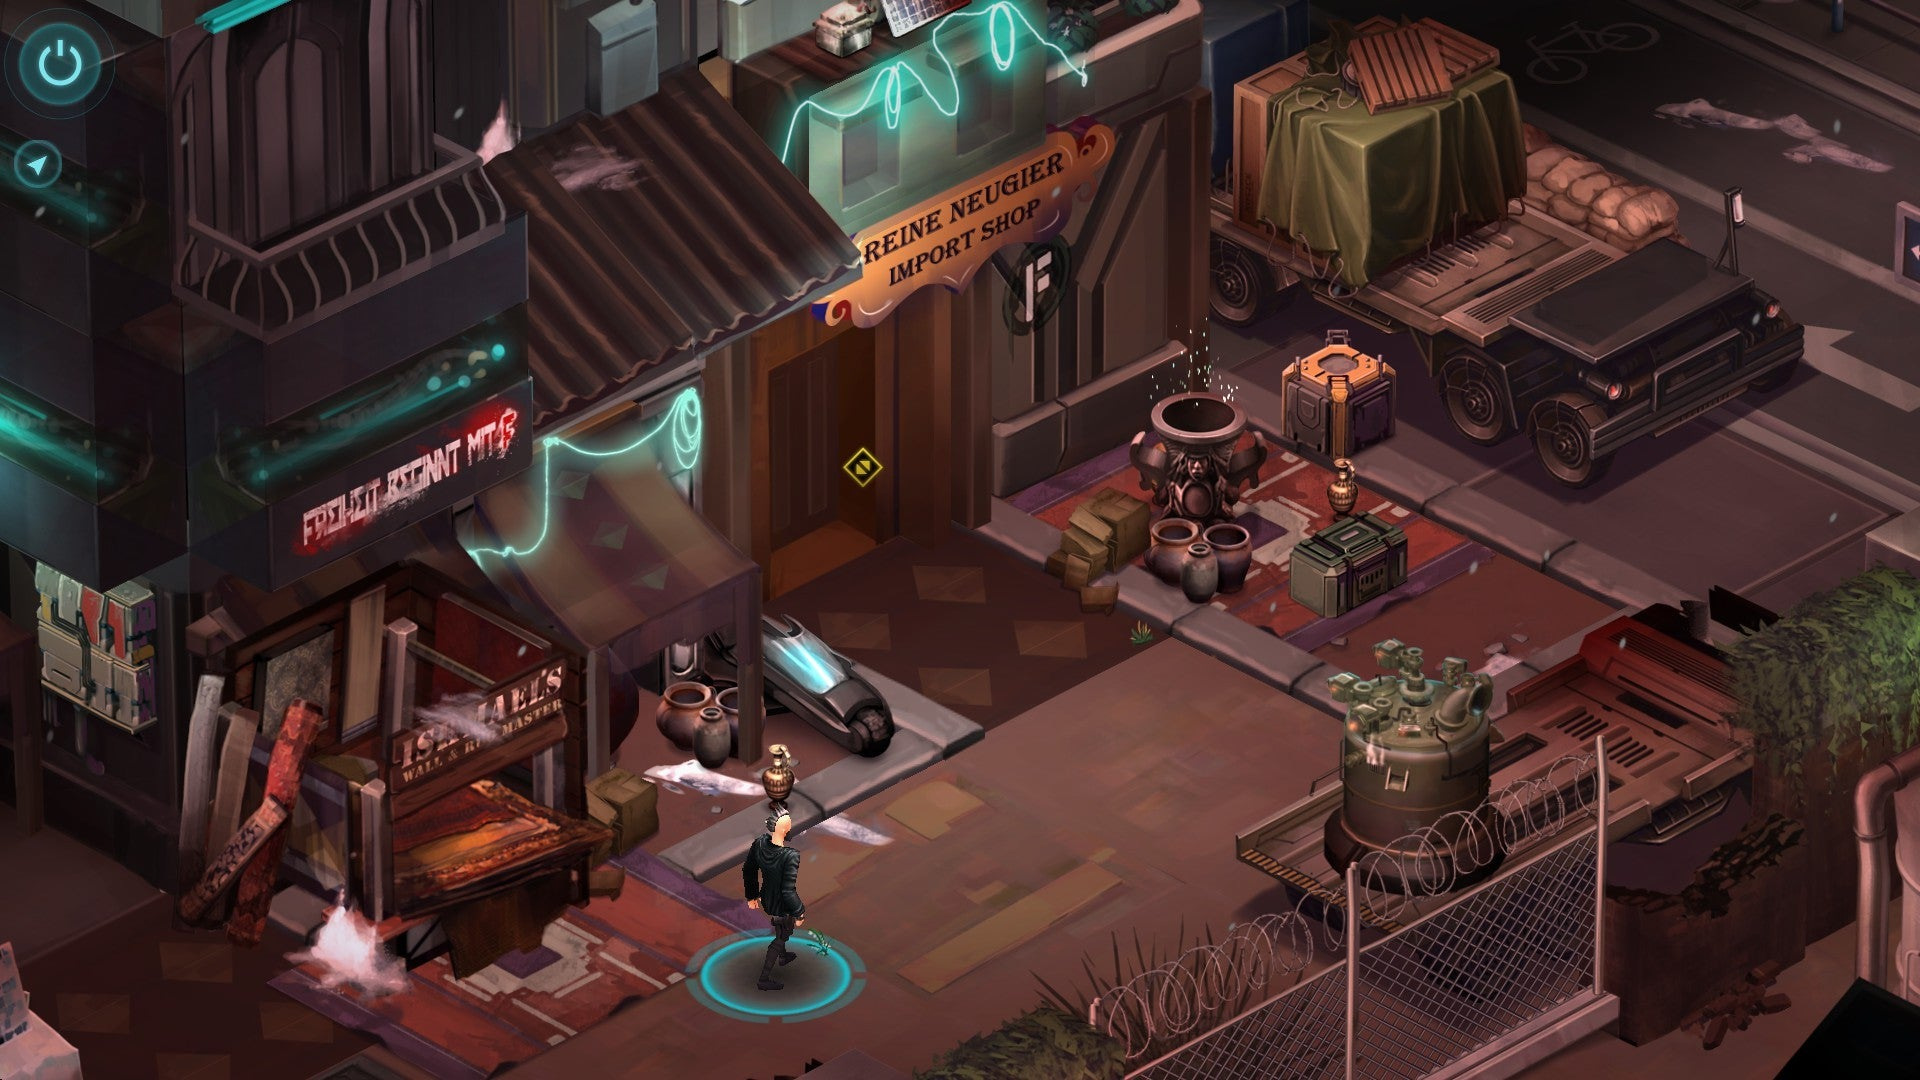 http://core0.staticworld.net/images/article/2014/03/shadowrun_6-100249152-orig.jpg